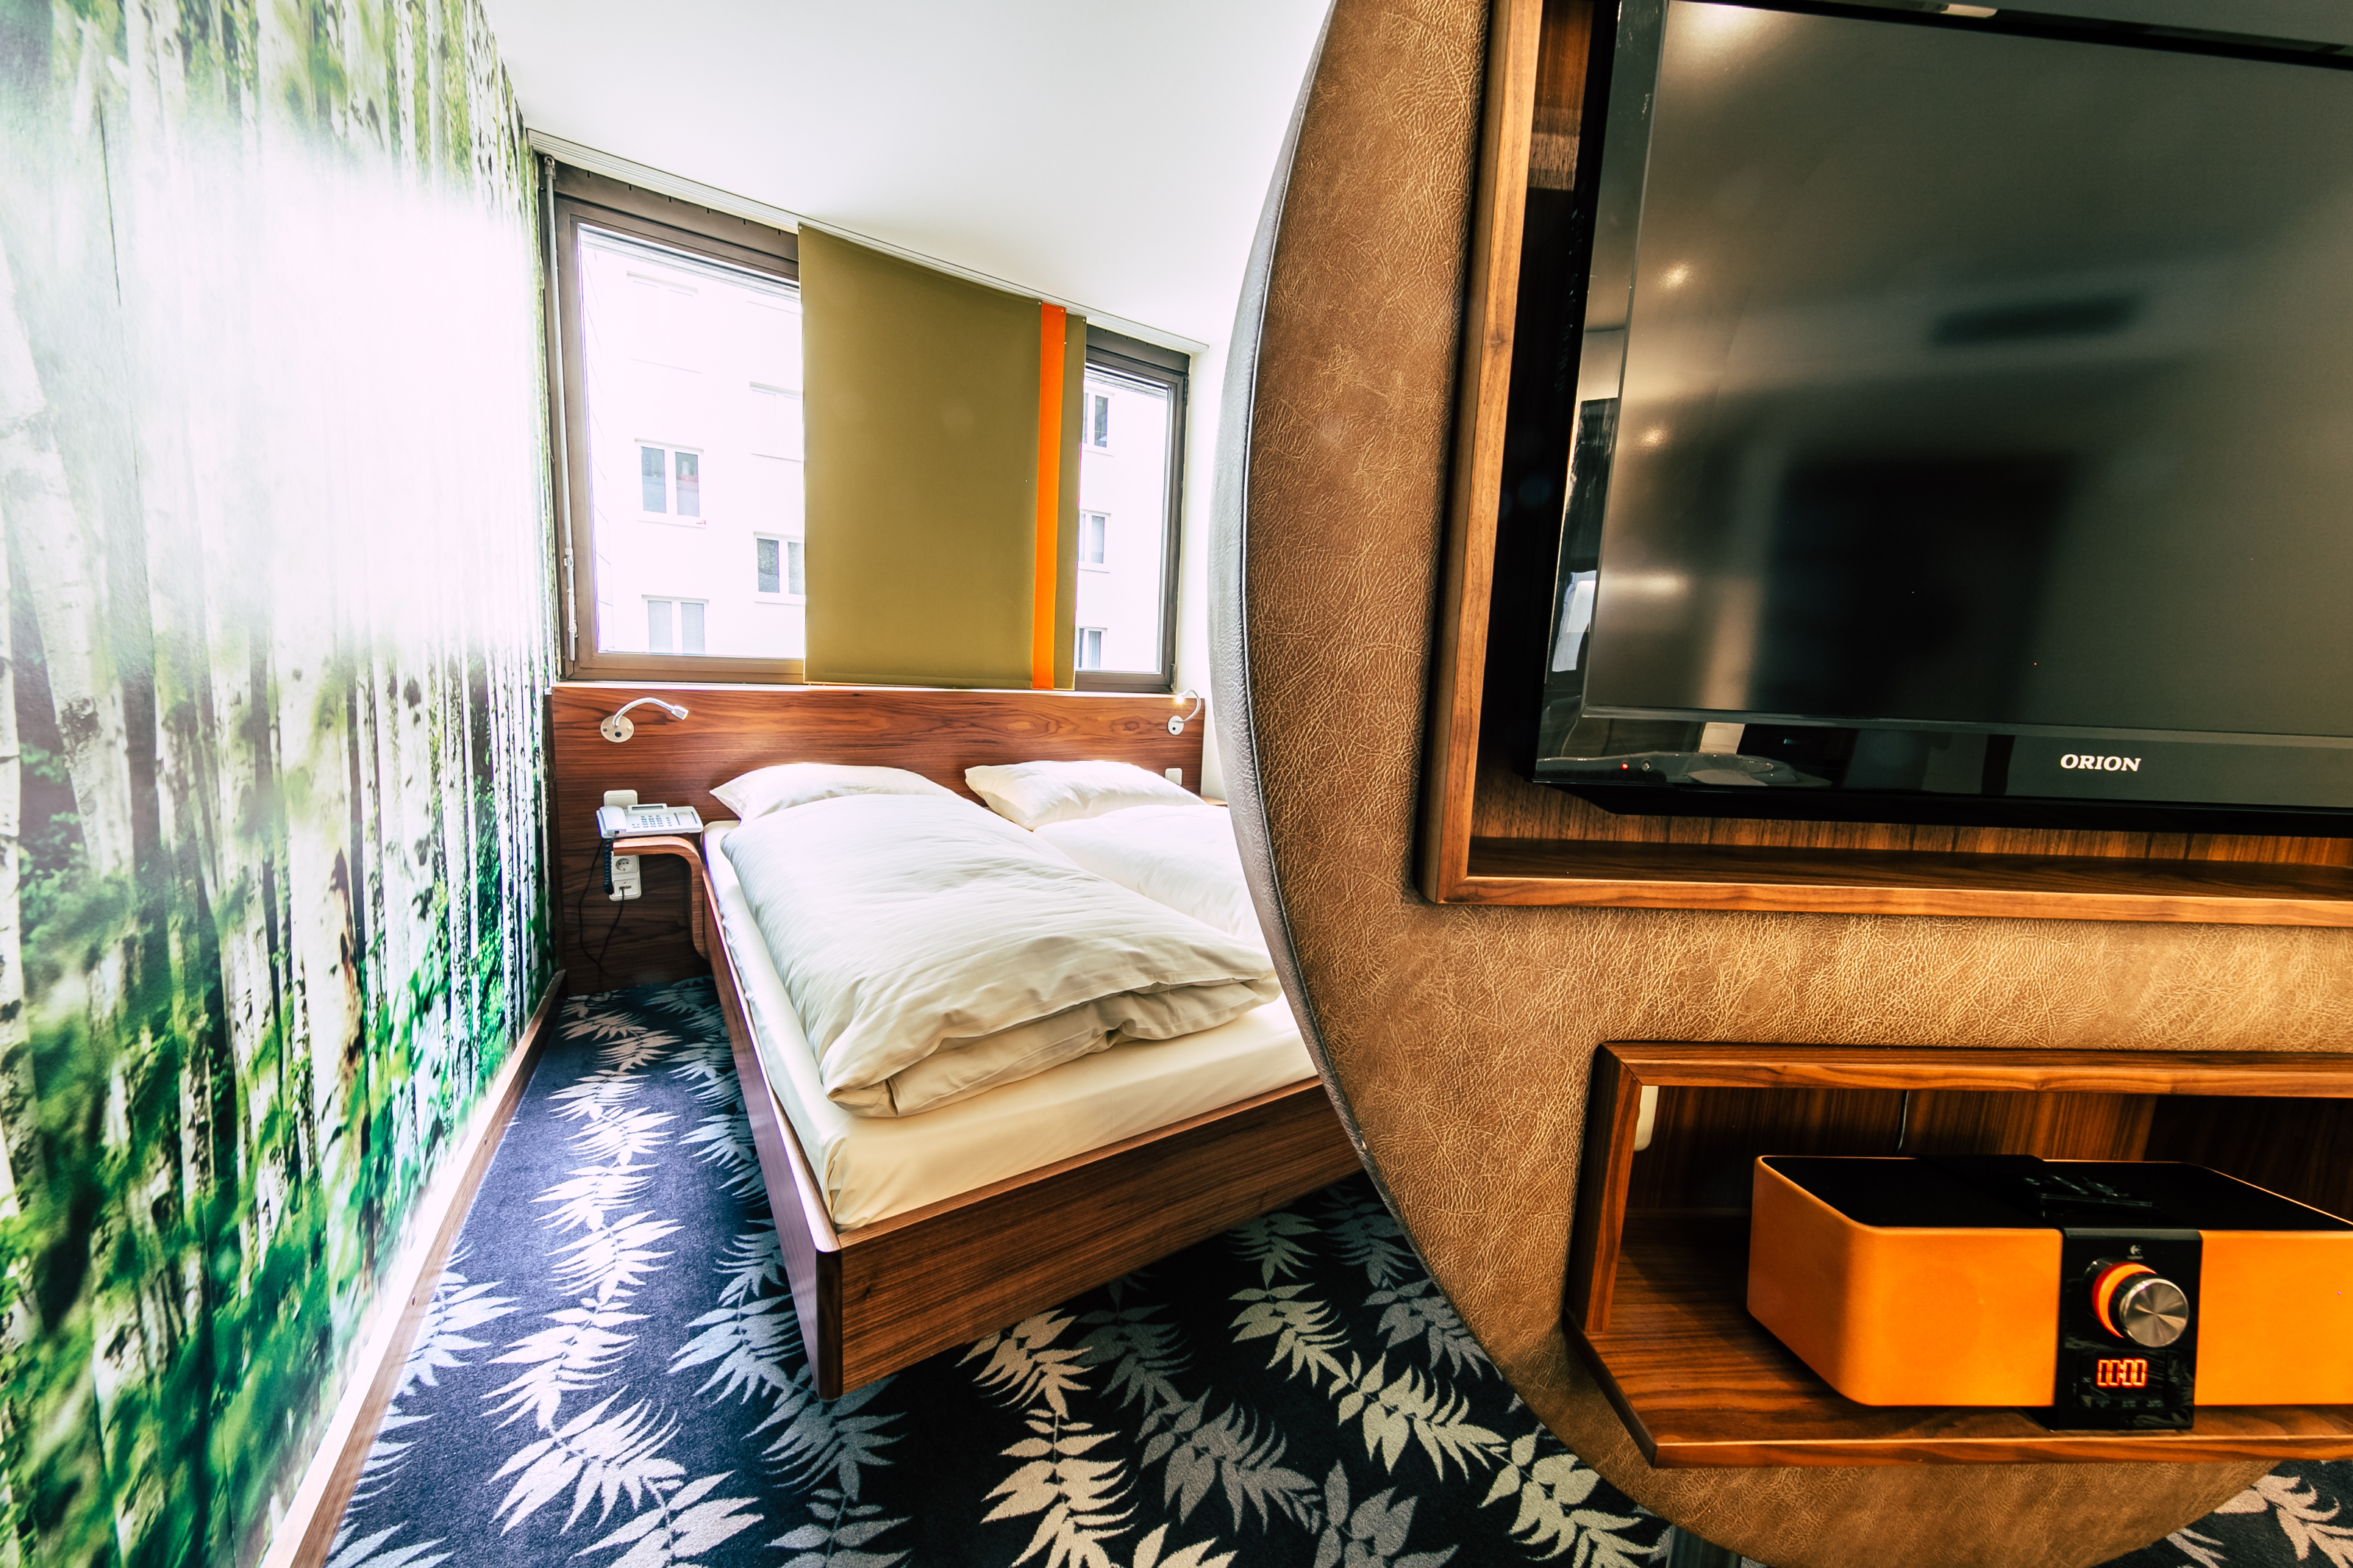 View into a double room in the Cocoon Hotel Stachus with a television integrated into a room divider.